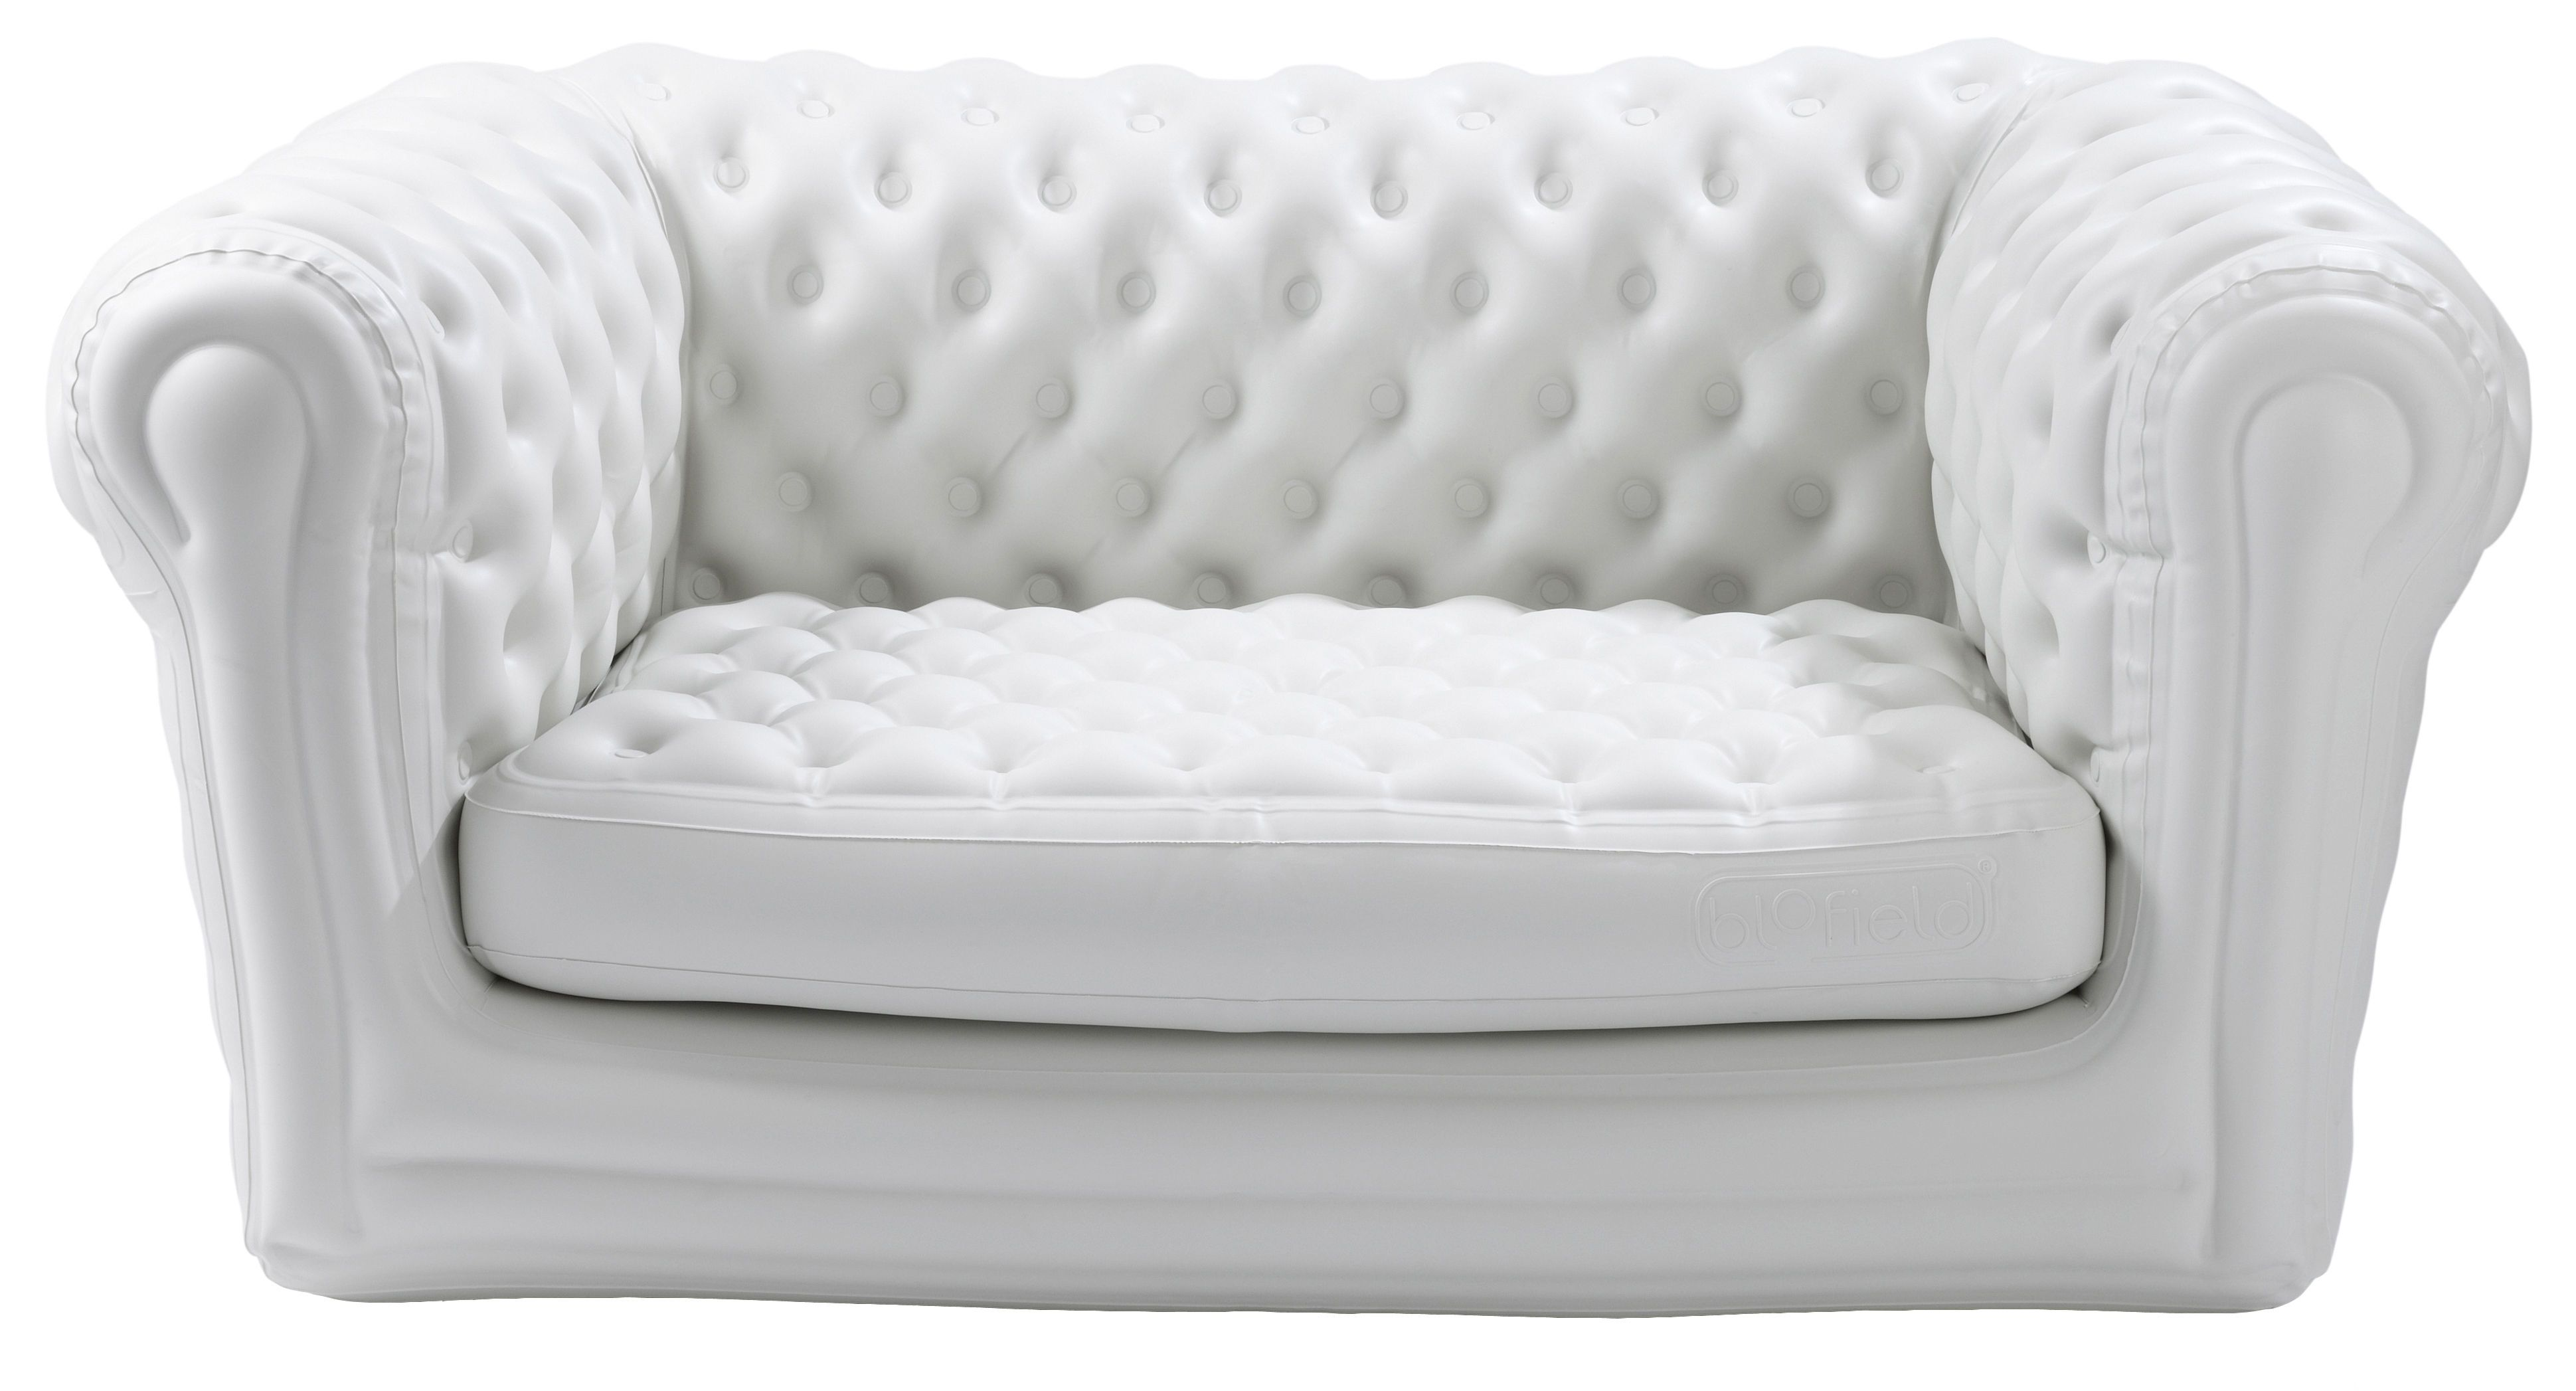 Sofa Zweisitzer The Inflatable Sofas What Should You Know About Them Sofa Bed